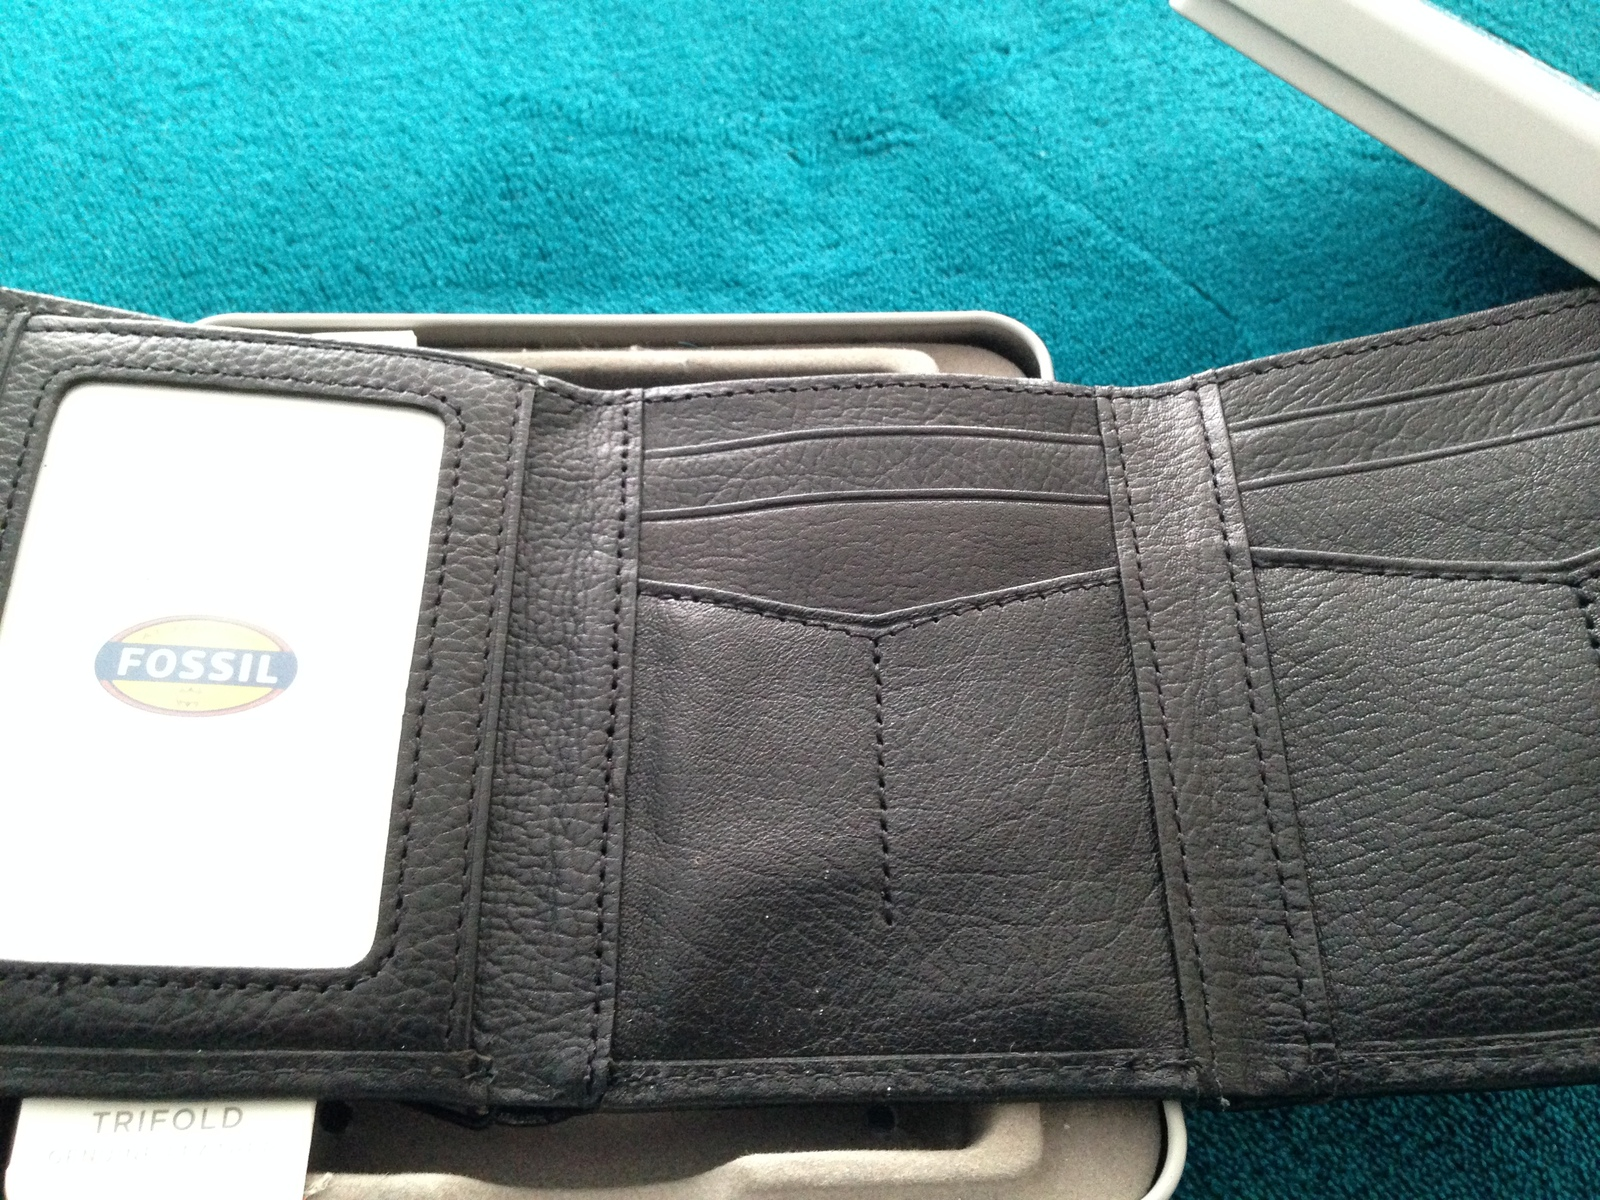 fossil trifold wallet black genuine leather with window